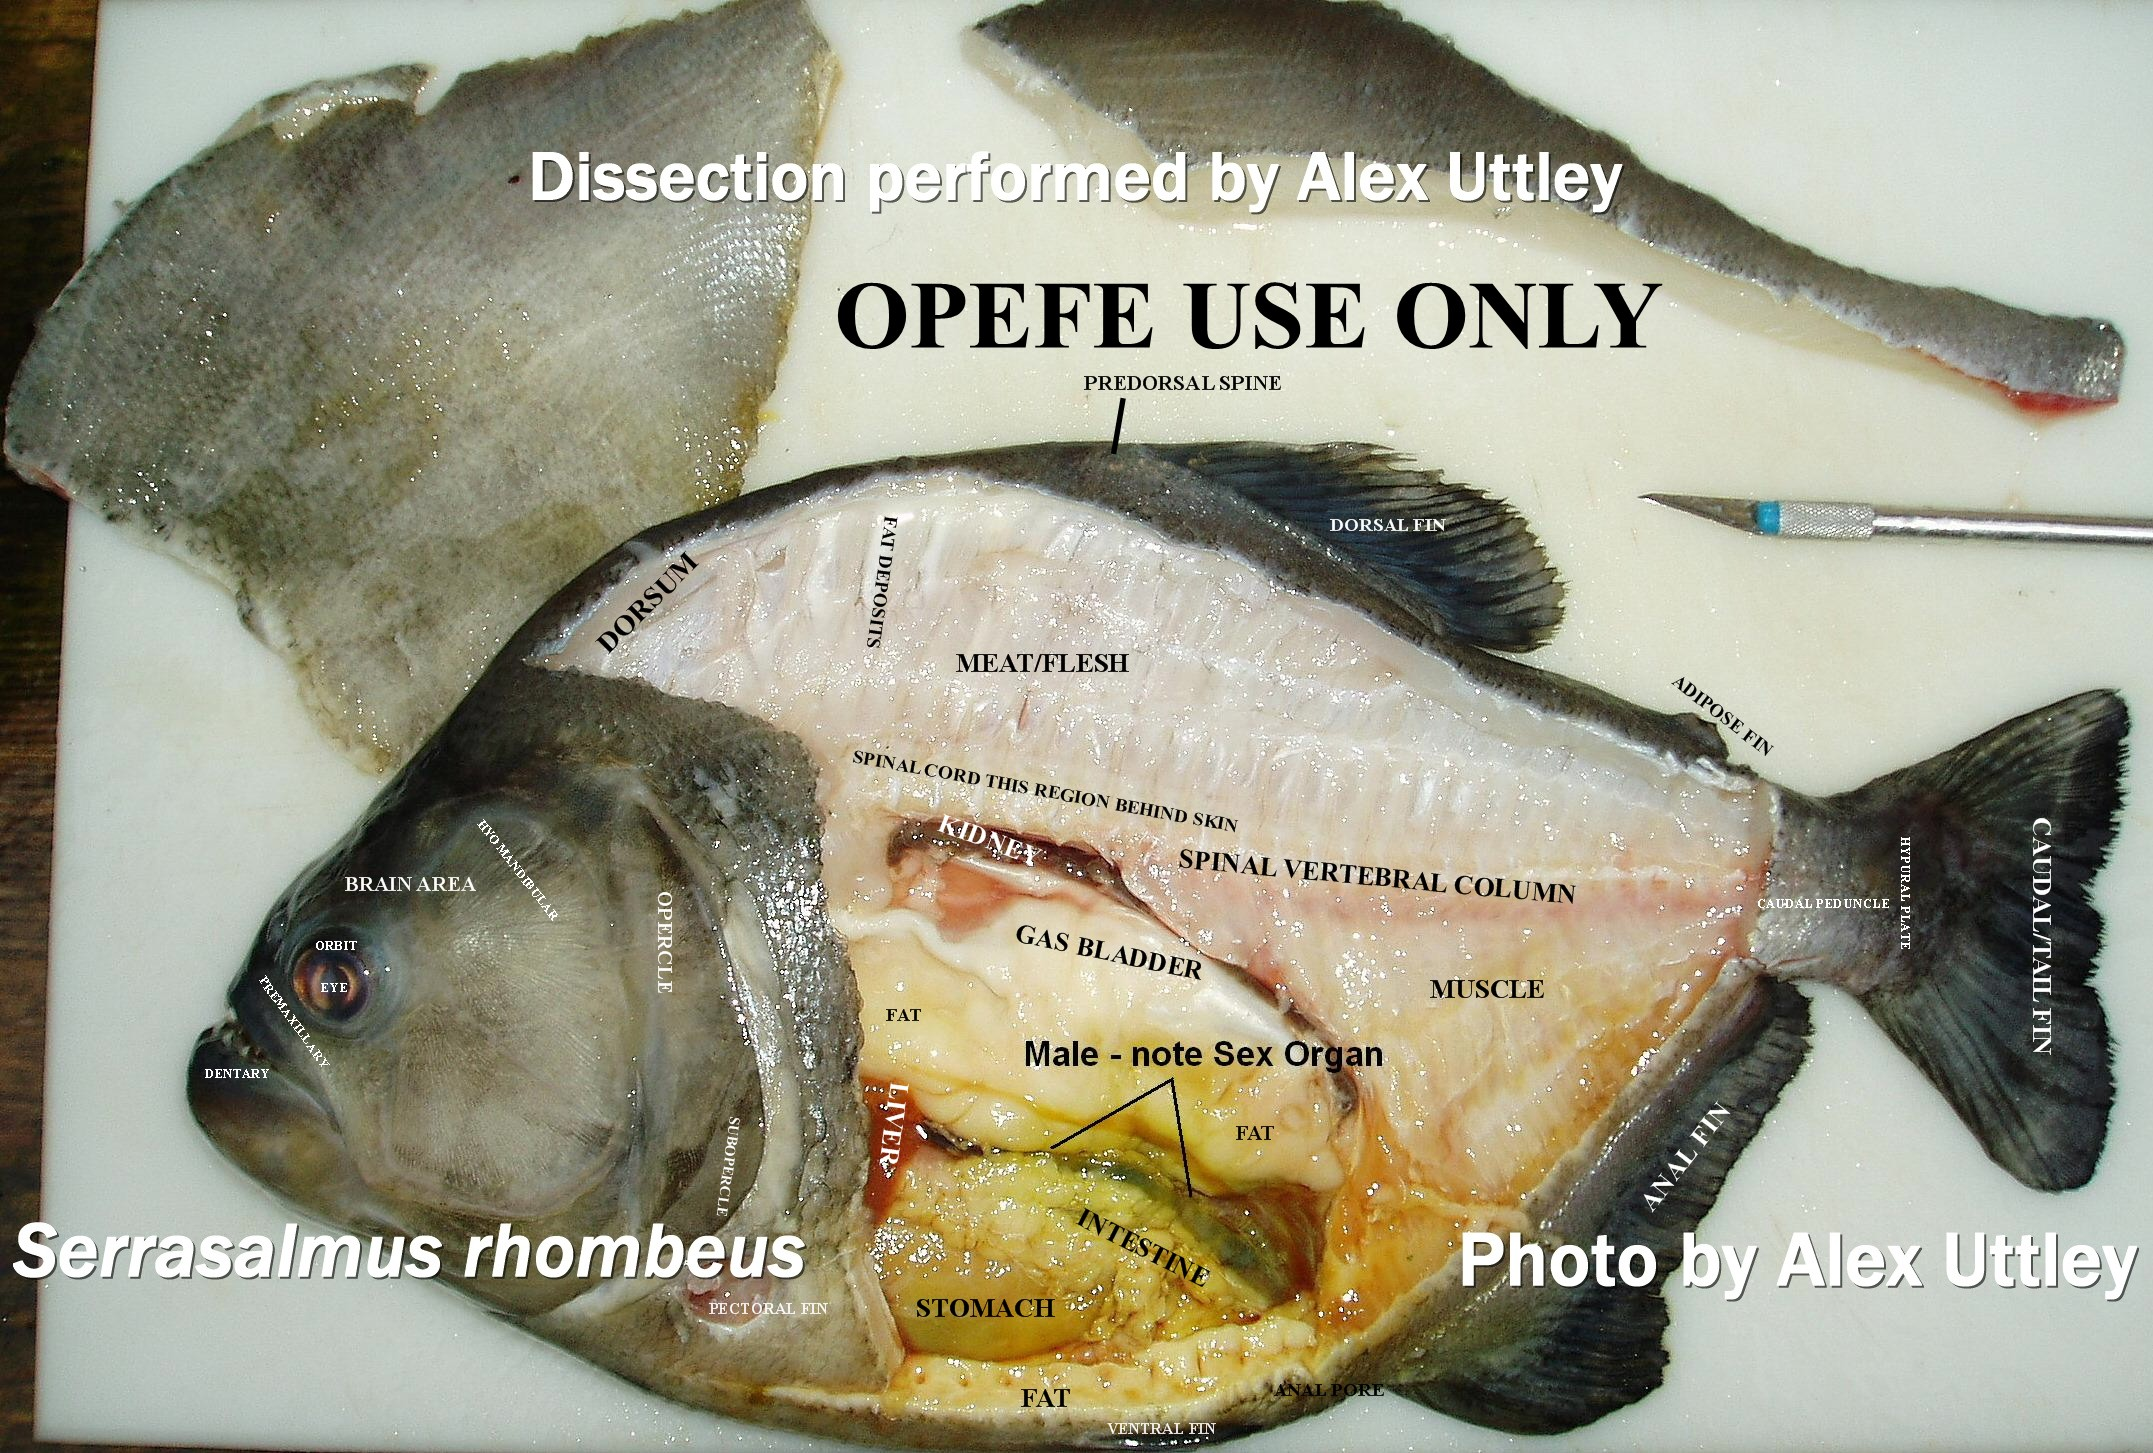 Serrasalmus rhombeus disseciton. OPEFE USE ONLY